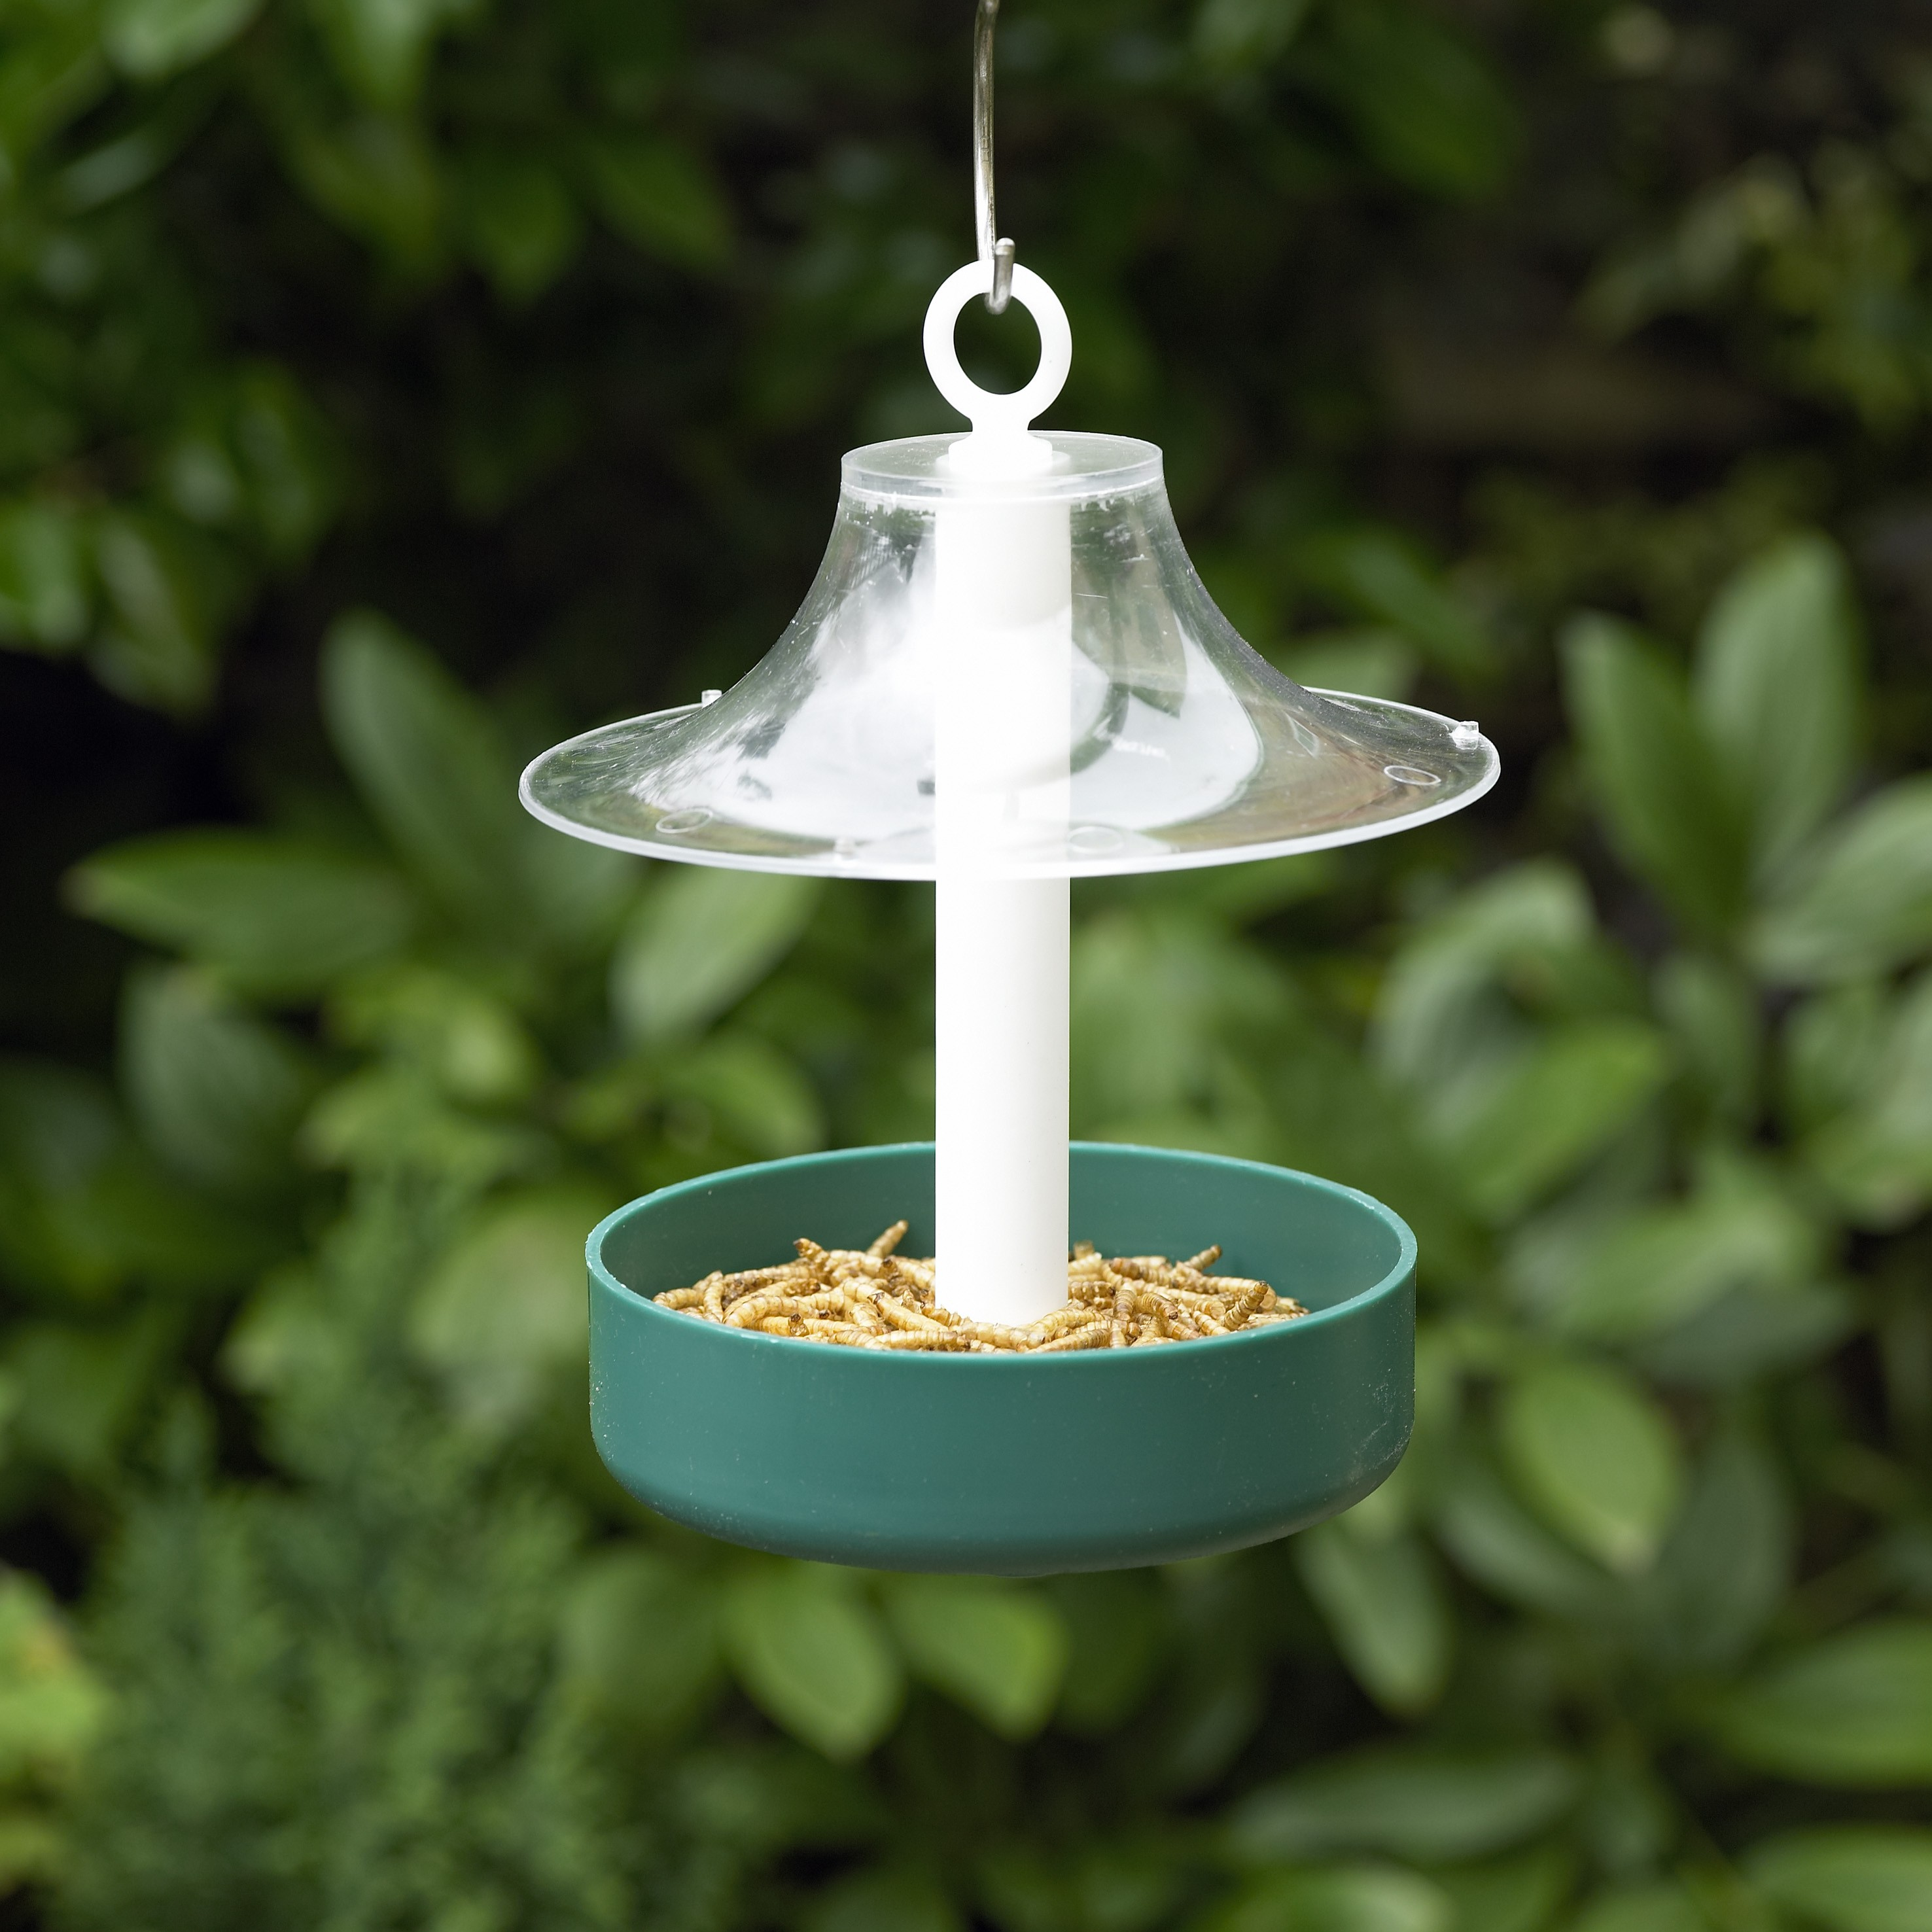 stupendous for reviews mesmerizing beckett corporation best birdhouse feeder wild heritage image squirrel bill proof north s electronic bird star station bills full